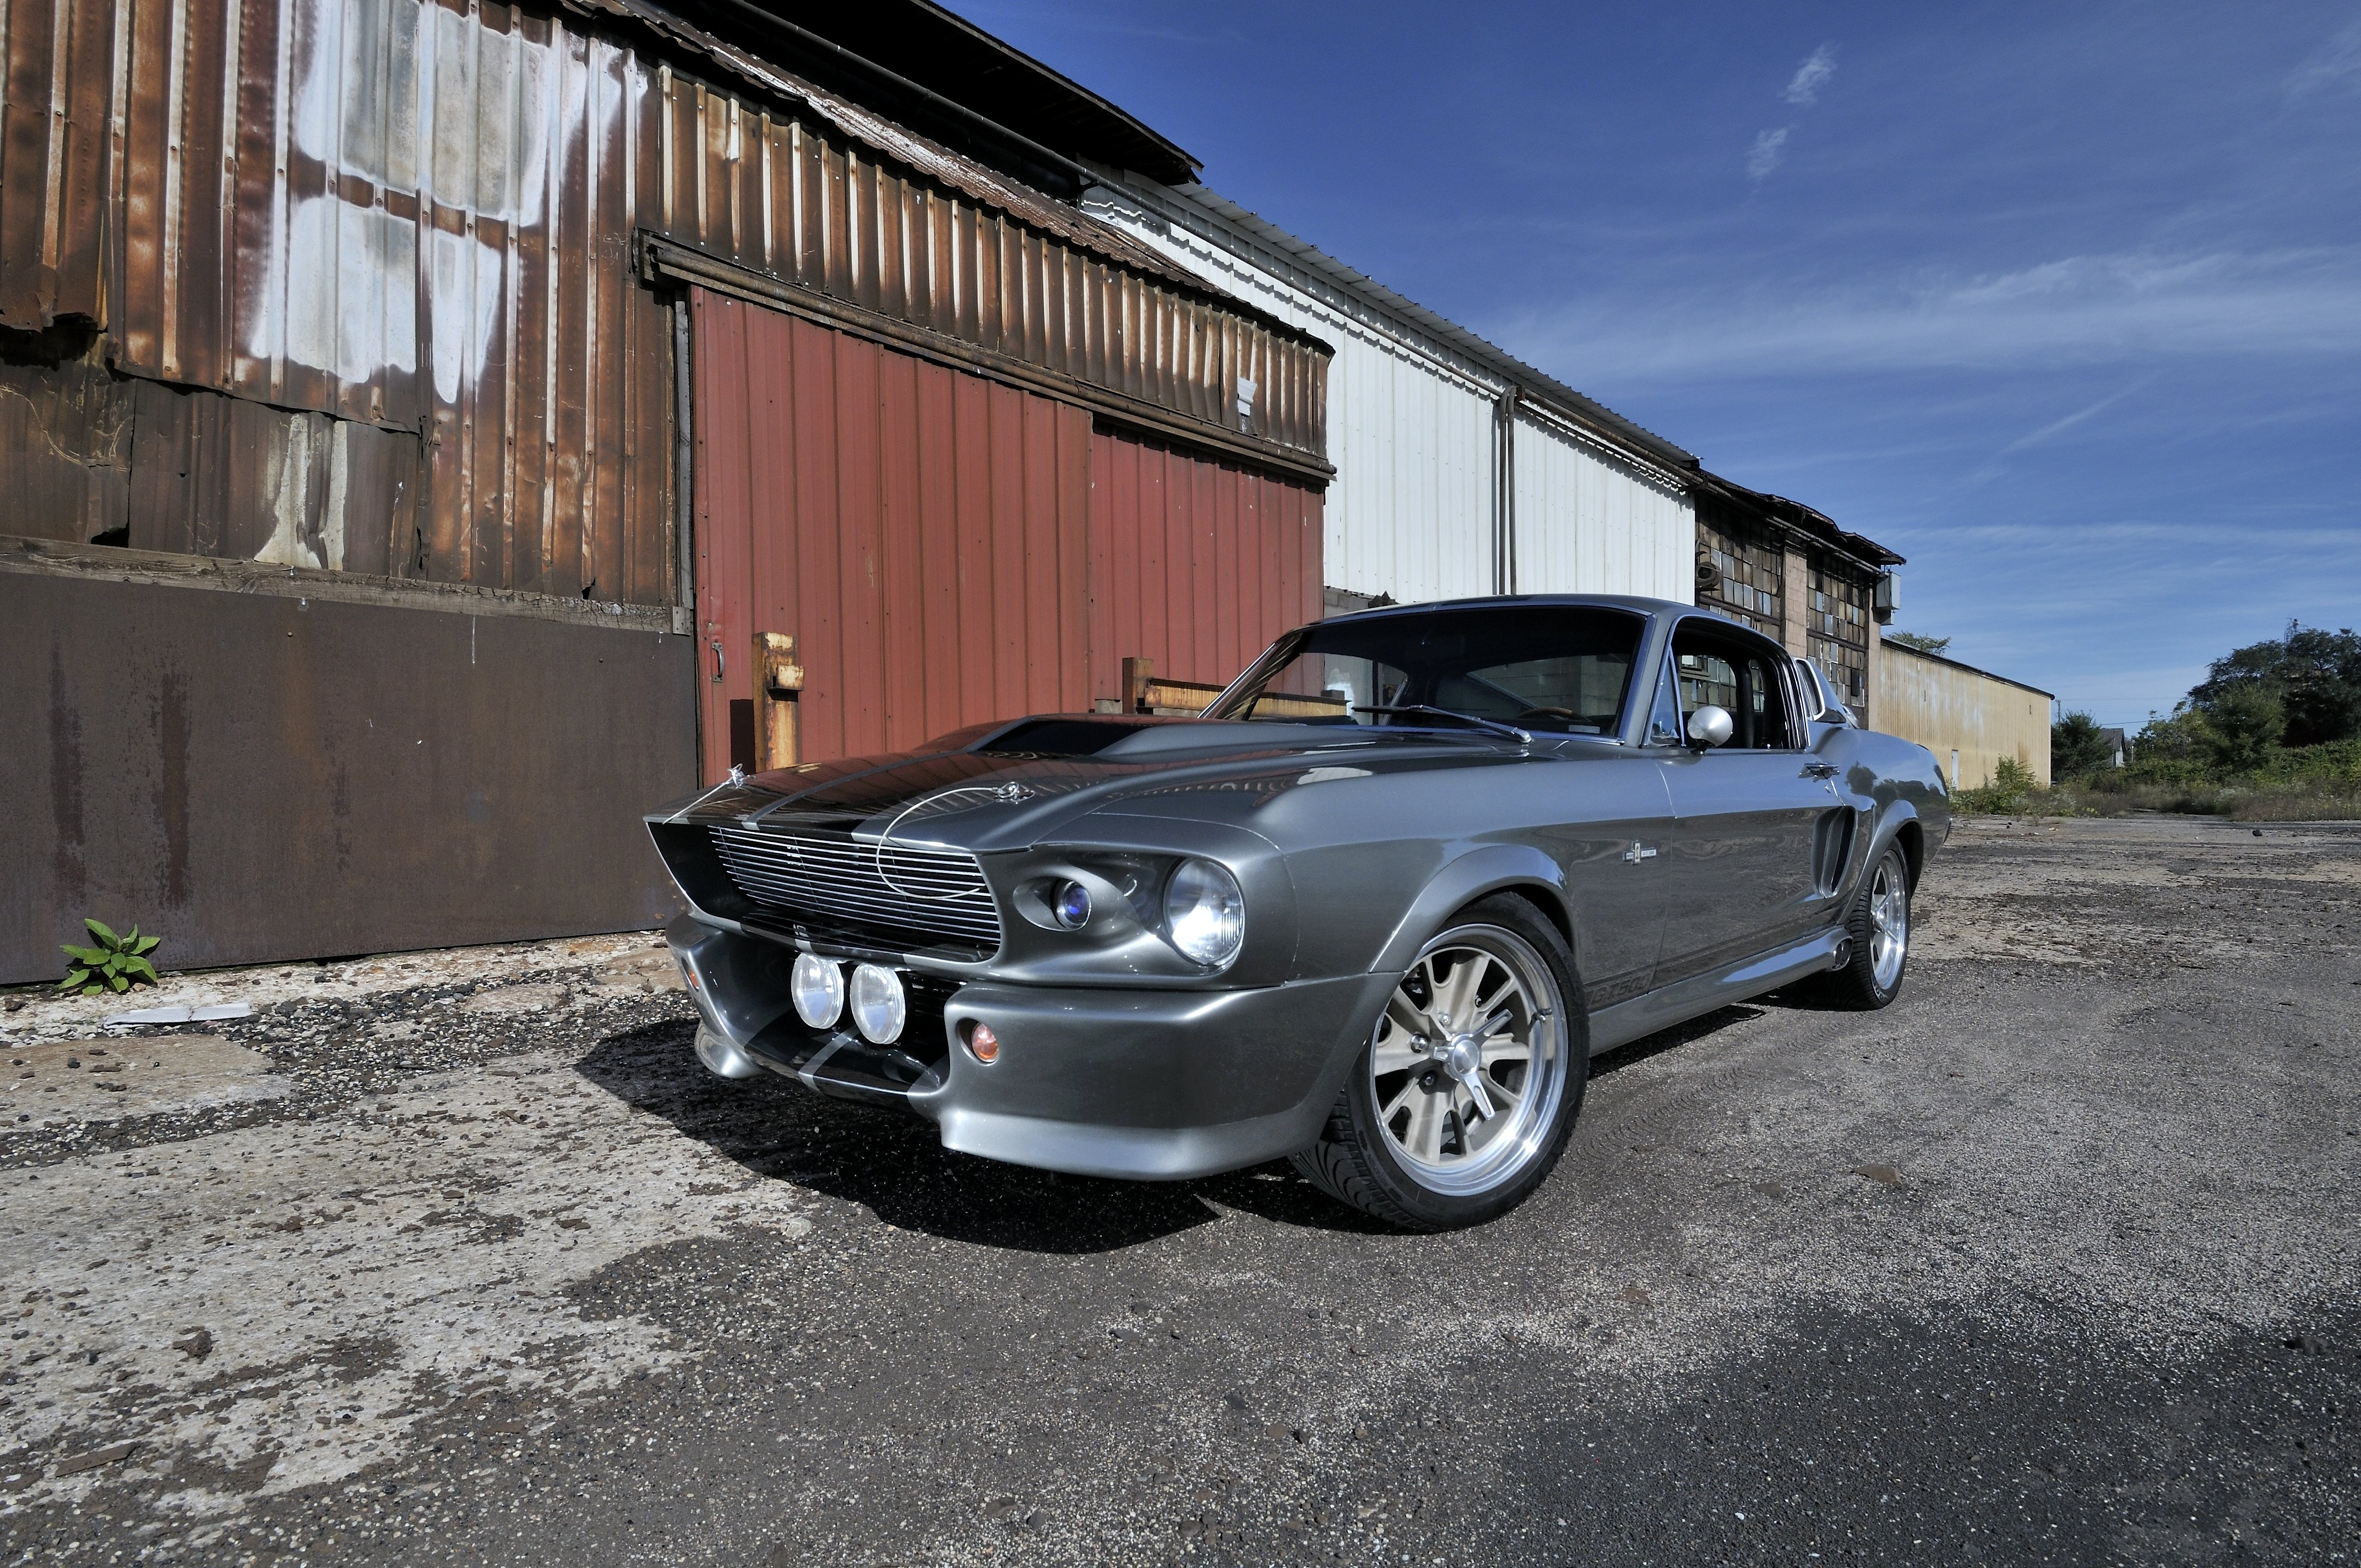 1967 Ford Mustang Shelby Gt500 Eleanor Gone In 60 Seconds Muscle